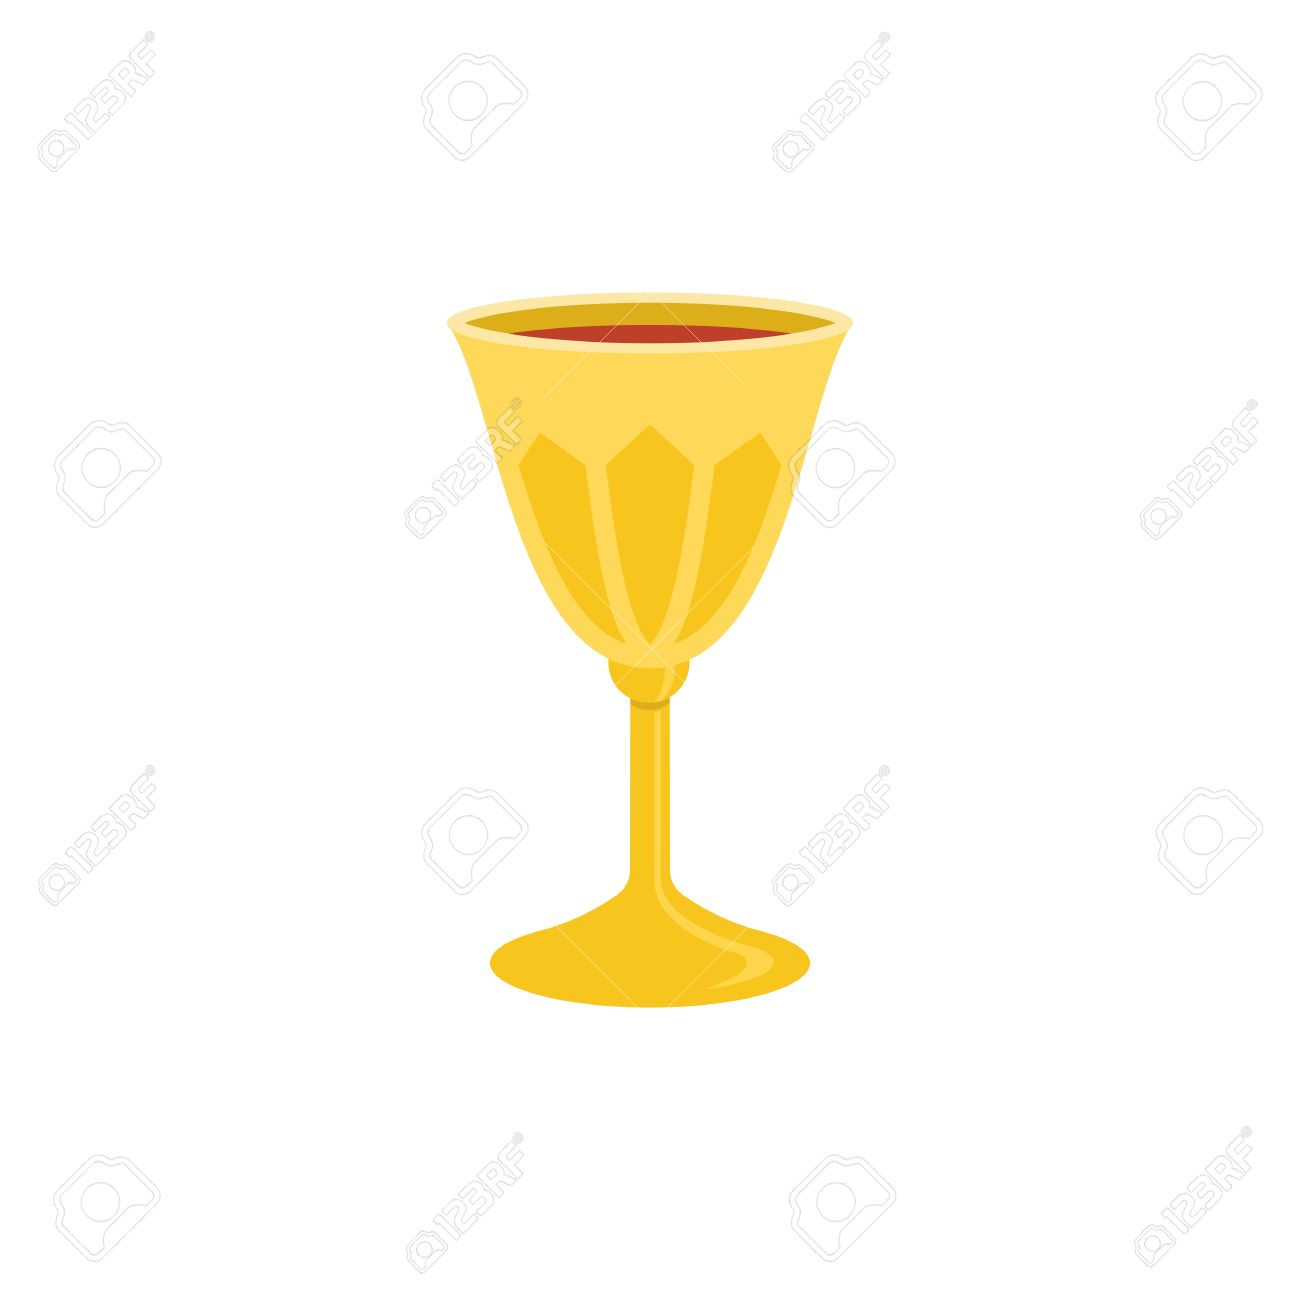 Holy Grail Icon, Chalice With Red Wine Illustration, Flat Design.